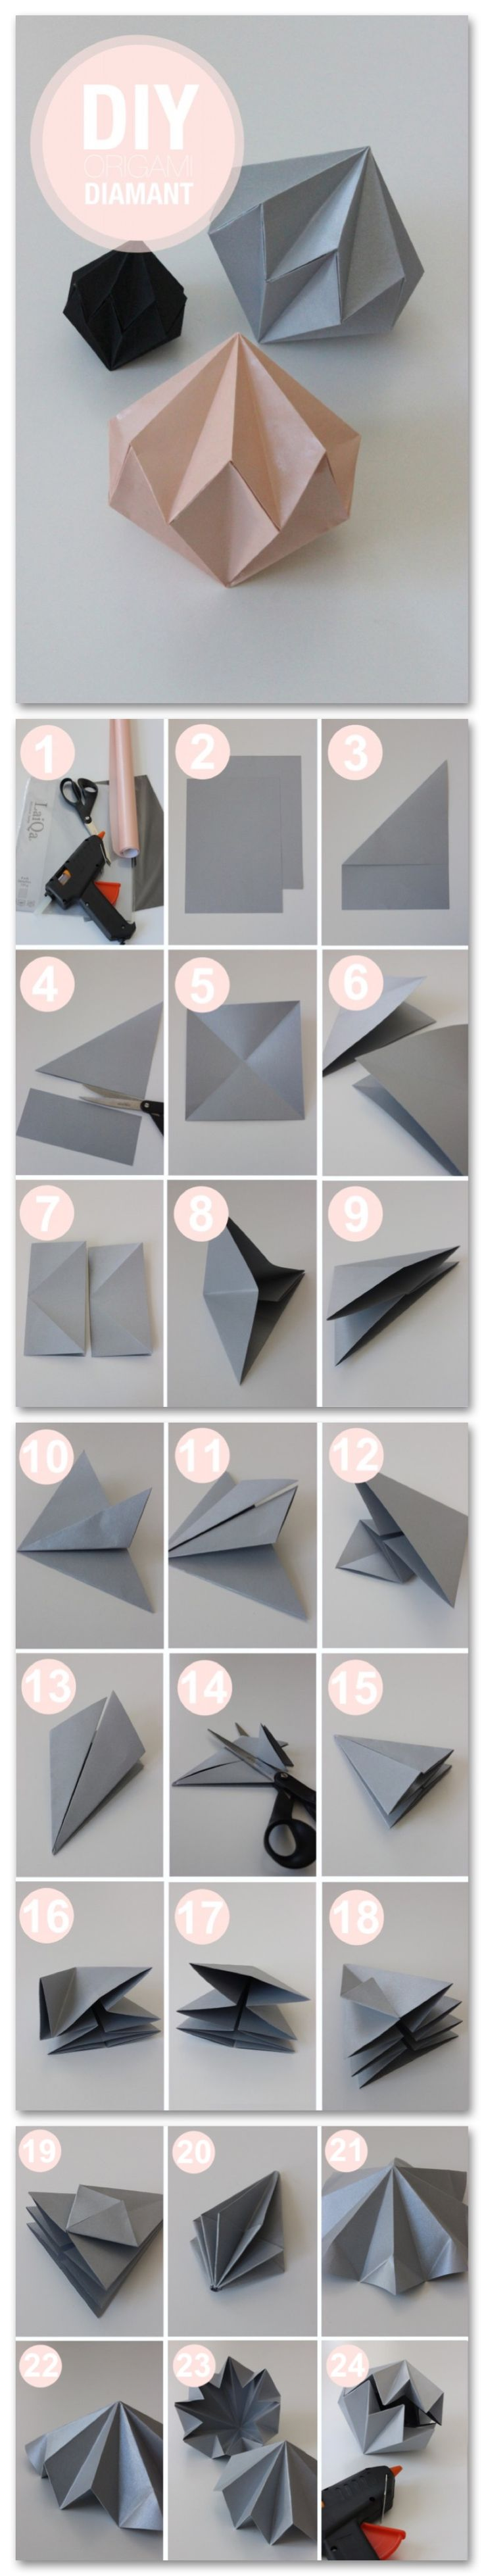 Origami Diamond Tutorial